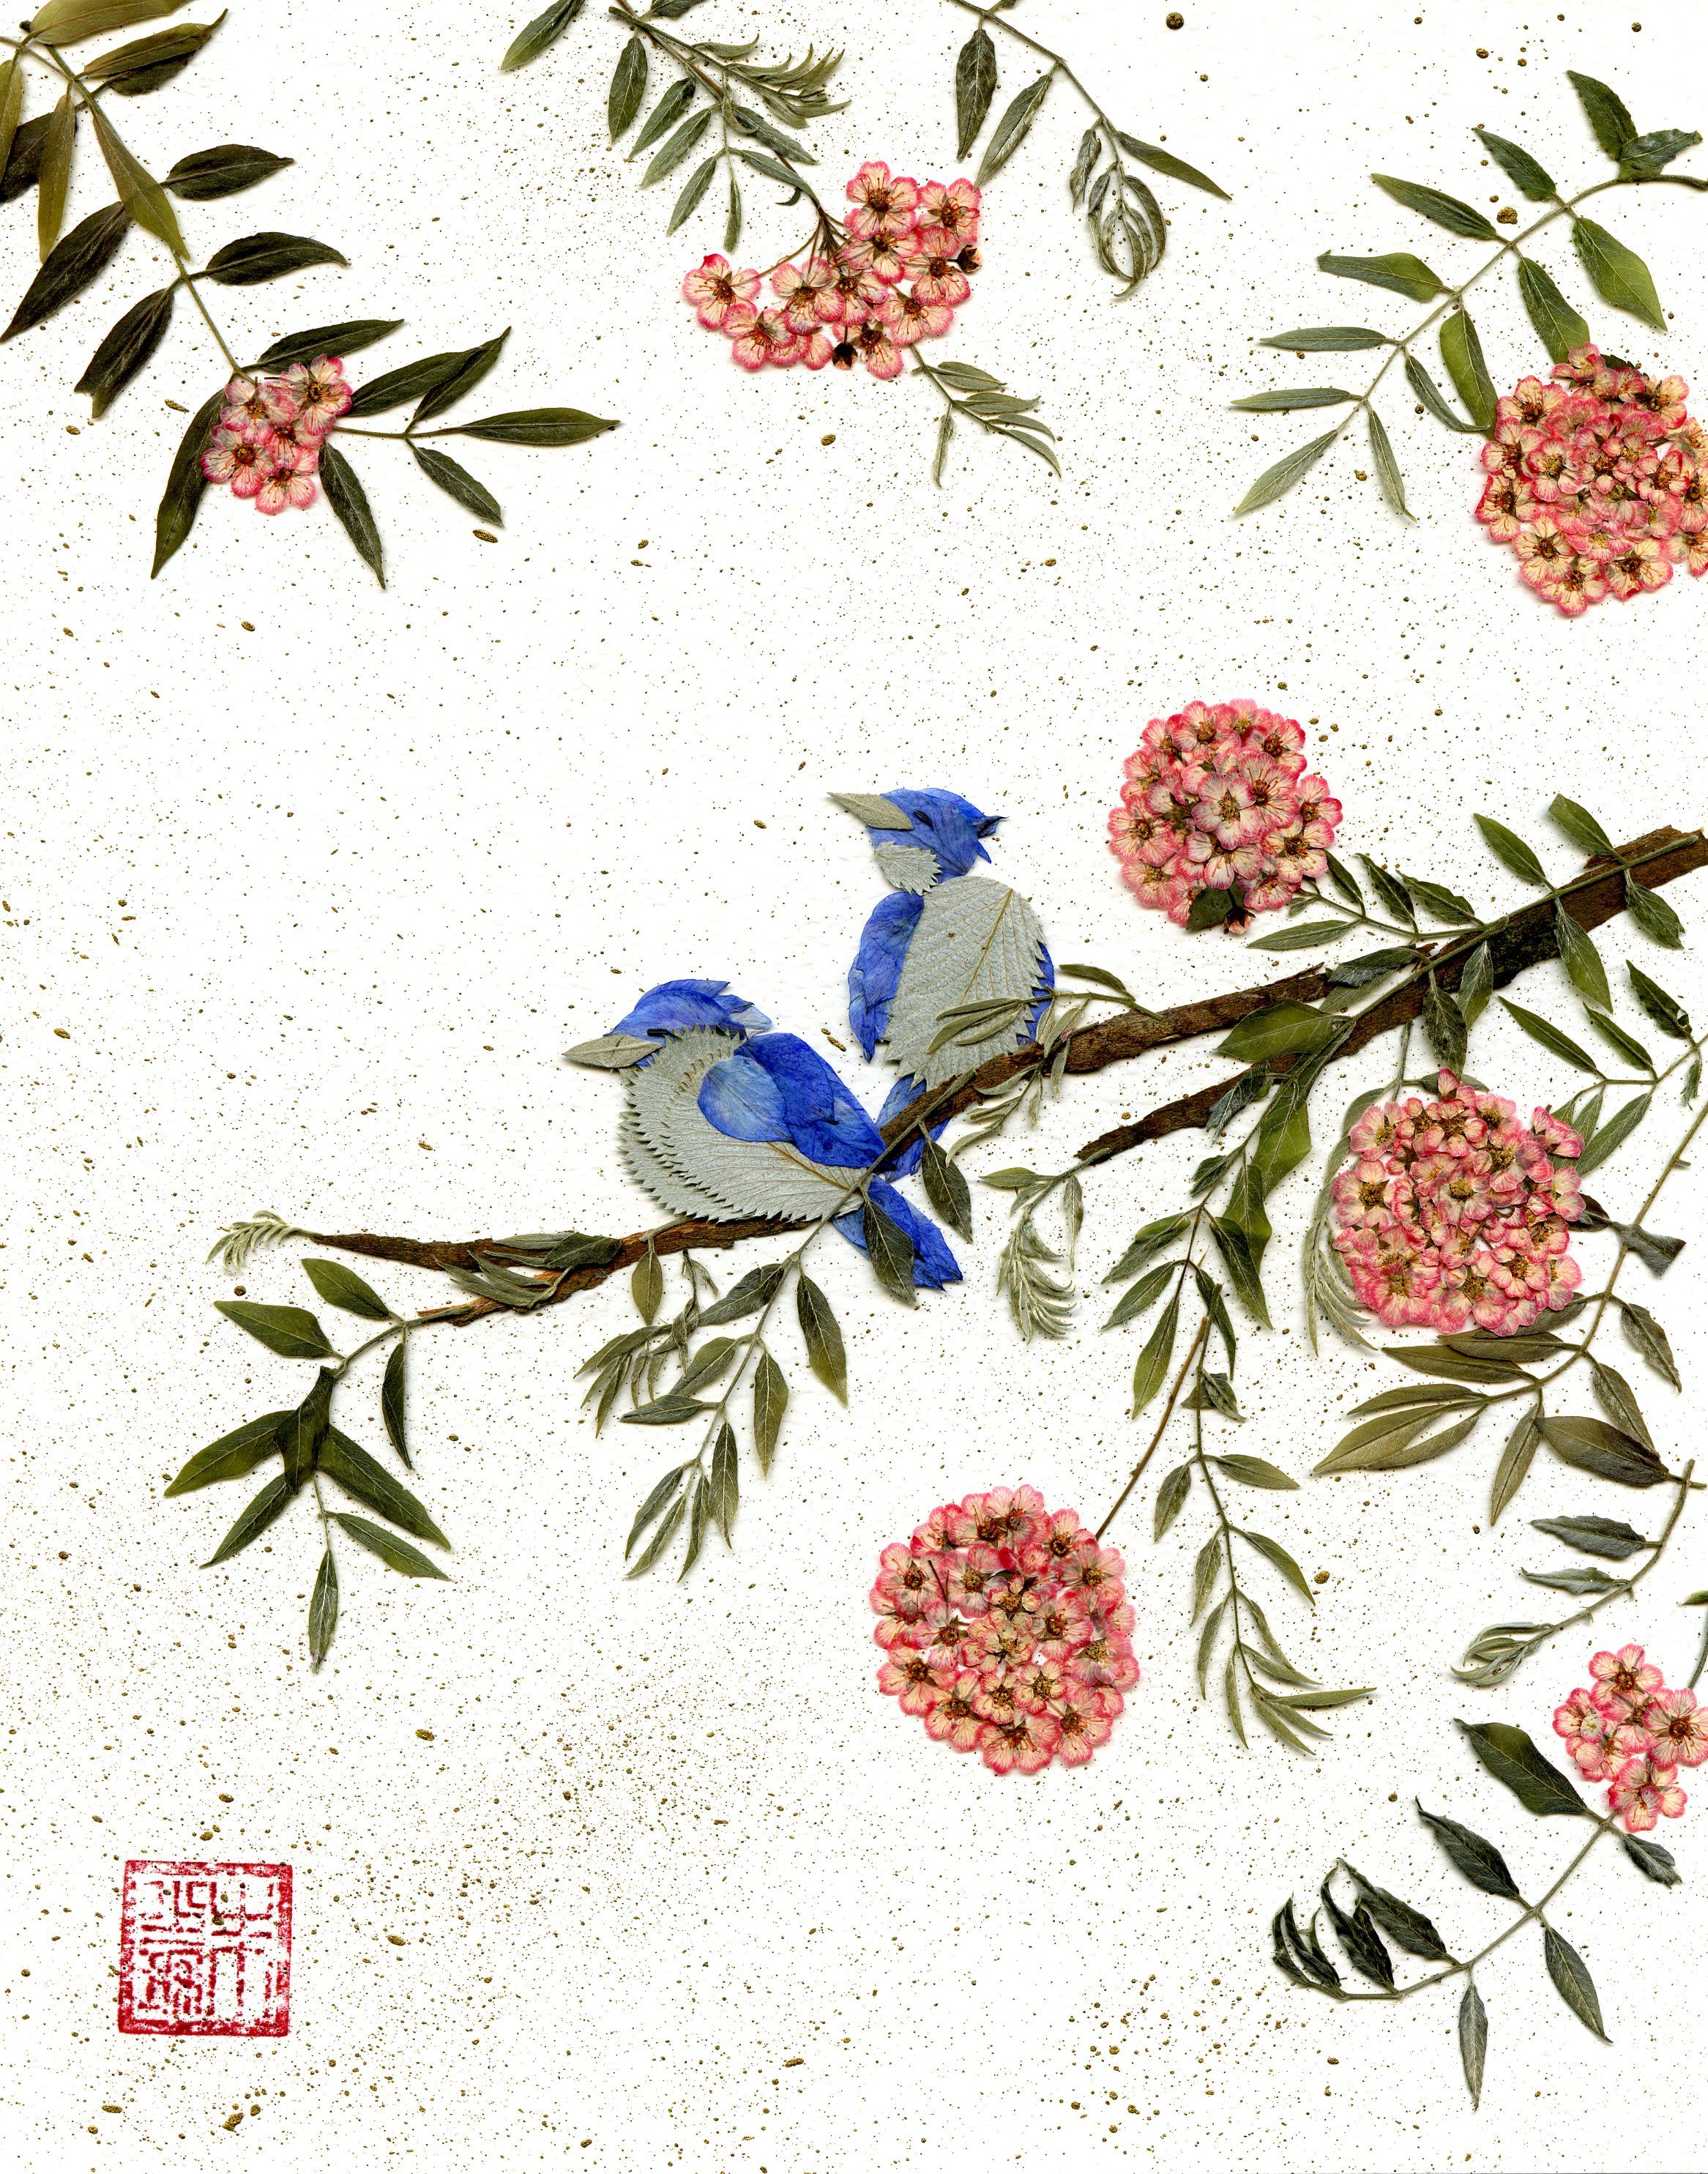 make pressed flower cards with sketches and watercolors of birds or other bac